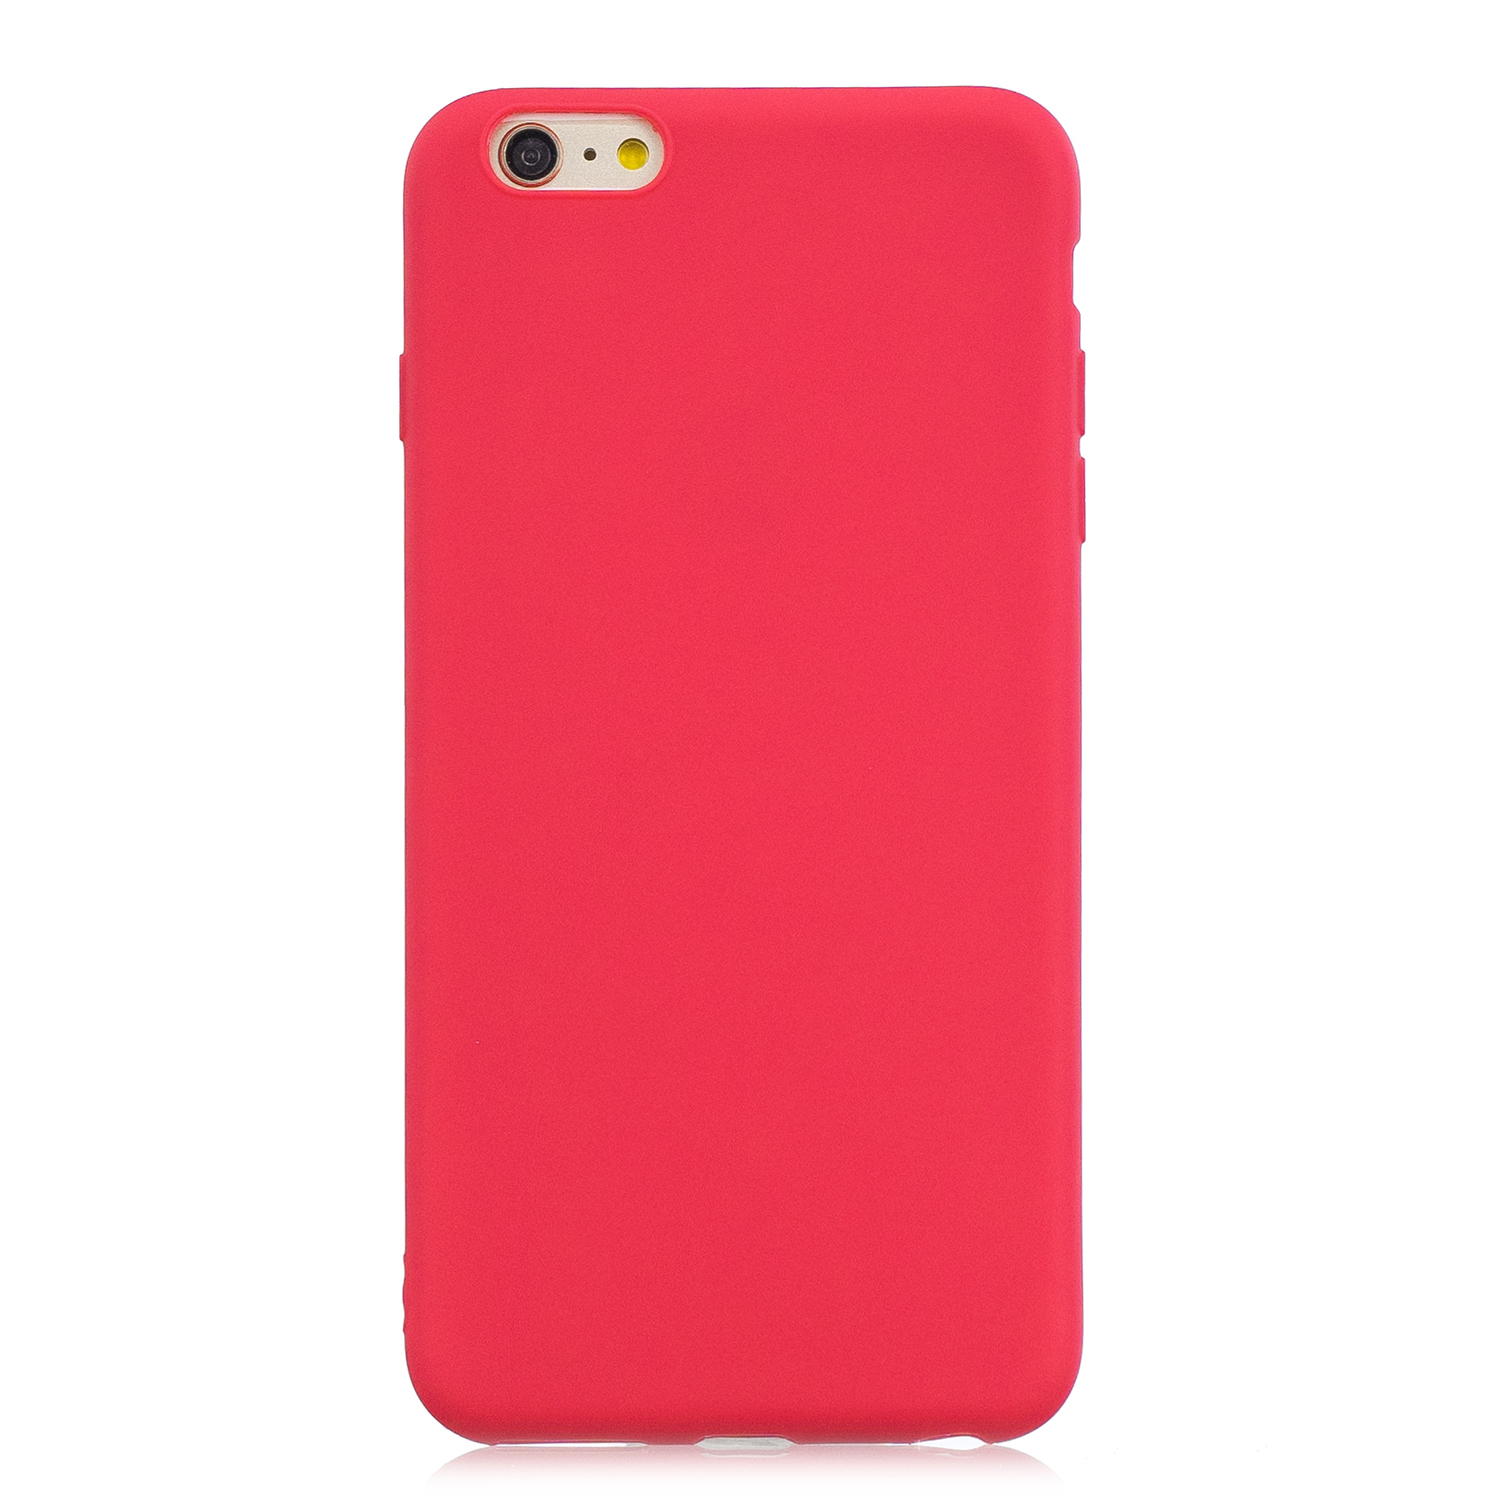 for iPhone 6/6S Lovely Candy Color Matte TPU Anti-scratch Non-slip Protective Cover Back Case red